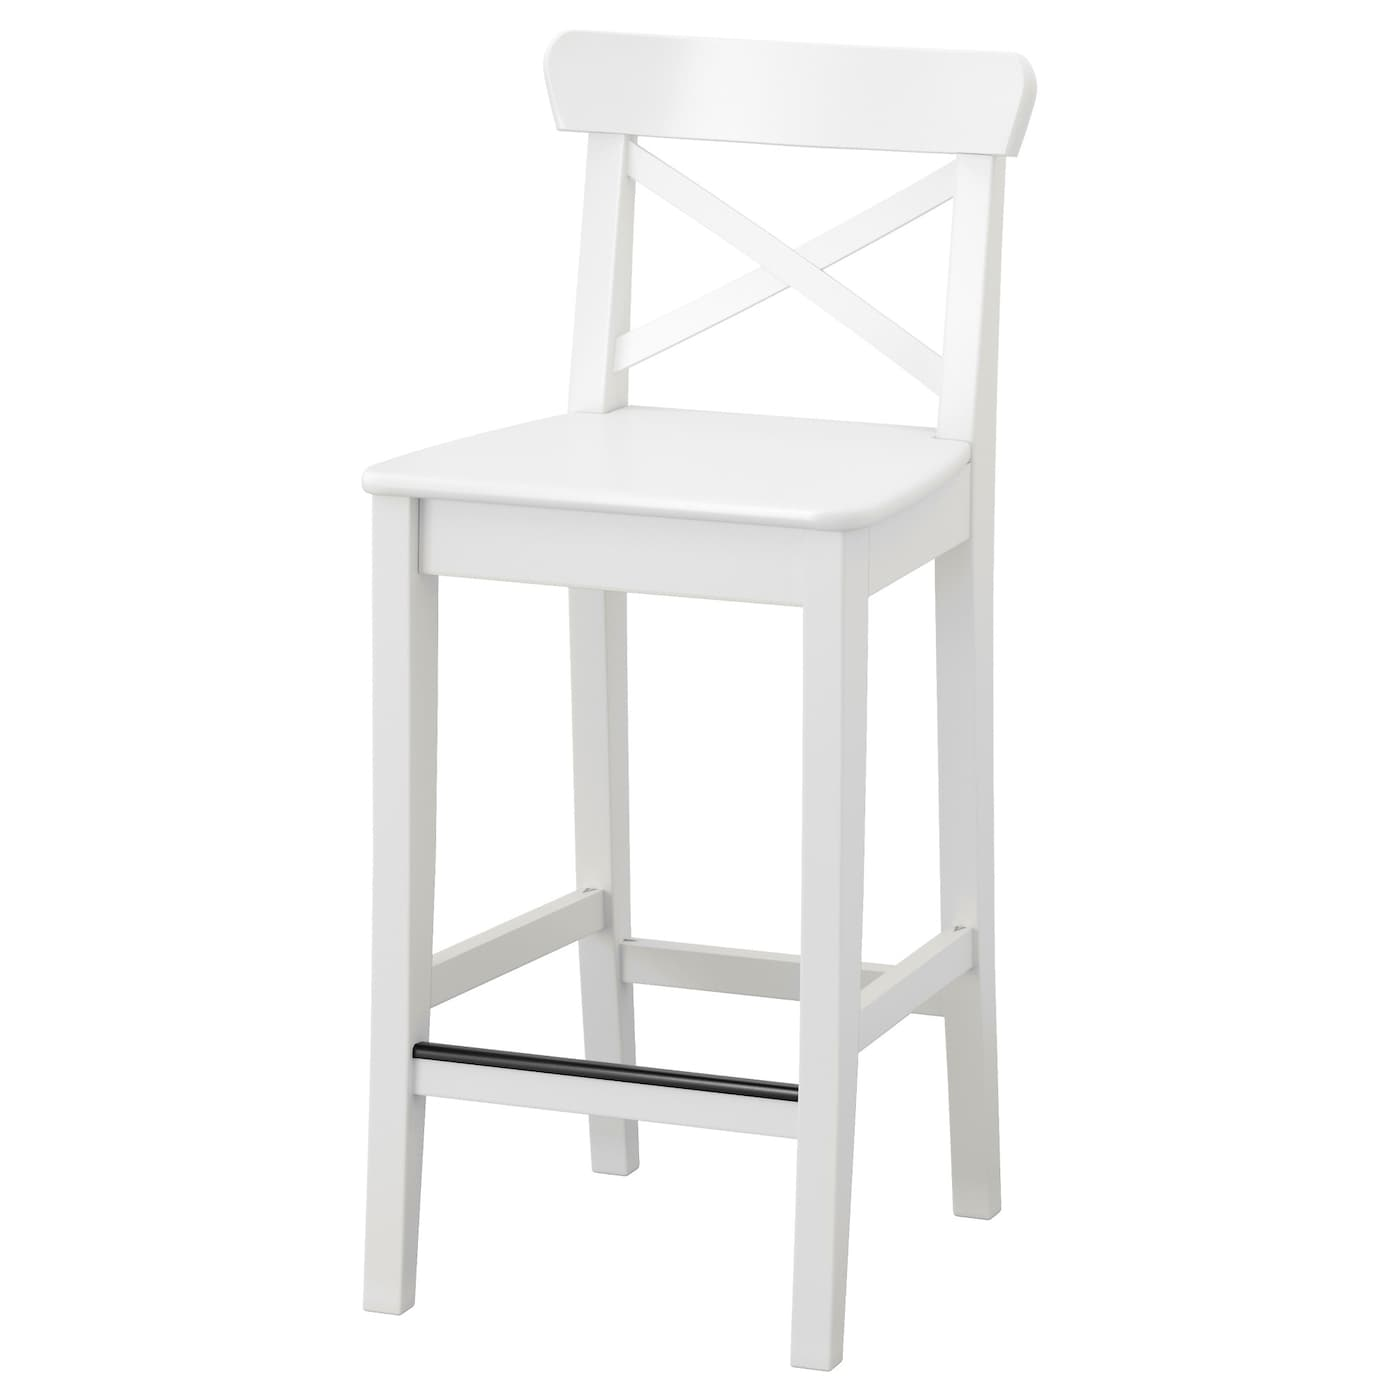 INGOLF Bar stool with backrest White 63 cm IKEA : ingolf bar stool with backrest white0452401pe601345s5 from www.ikea.com size 2000 x 2000 jpeg 122kB